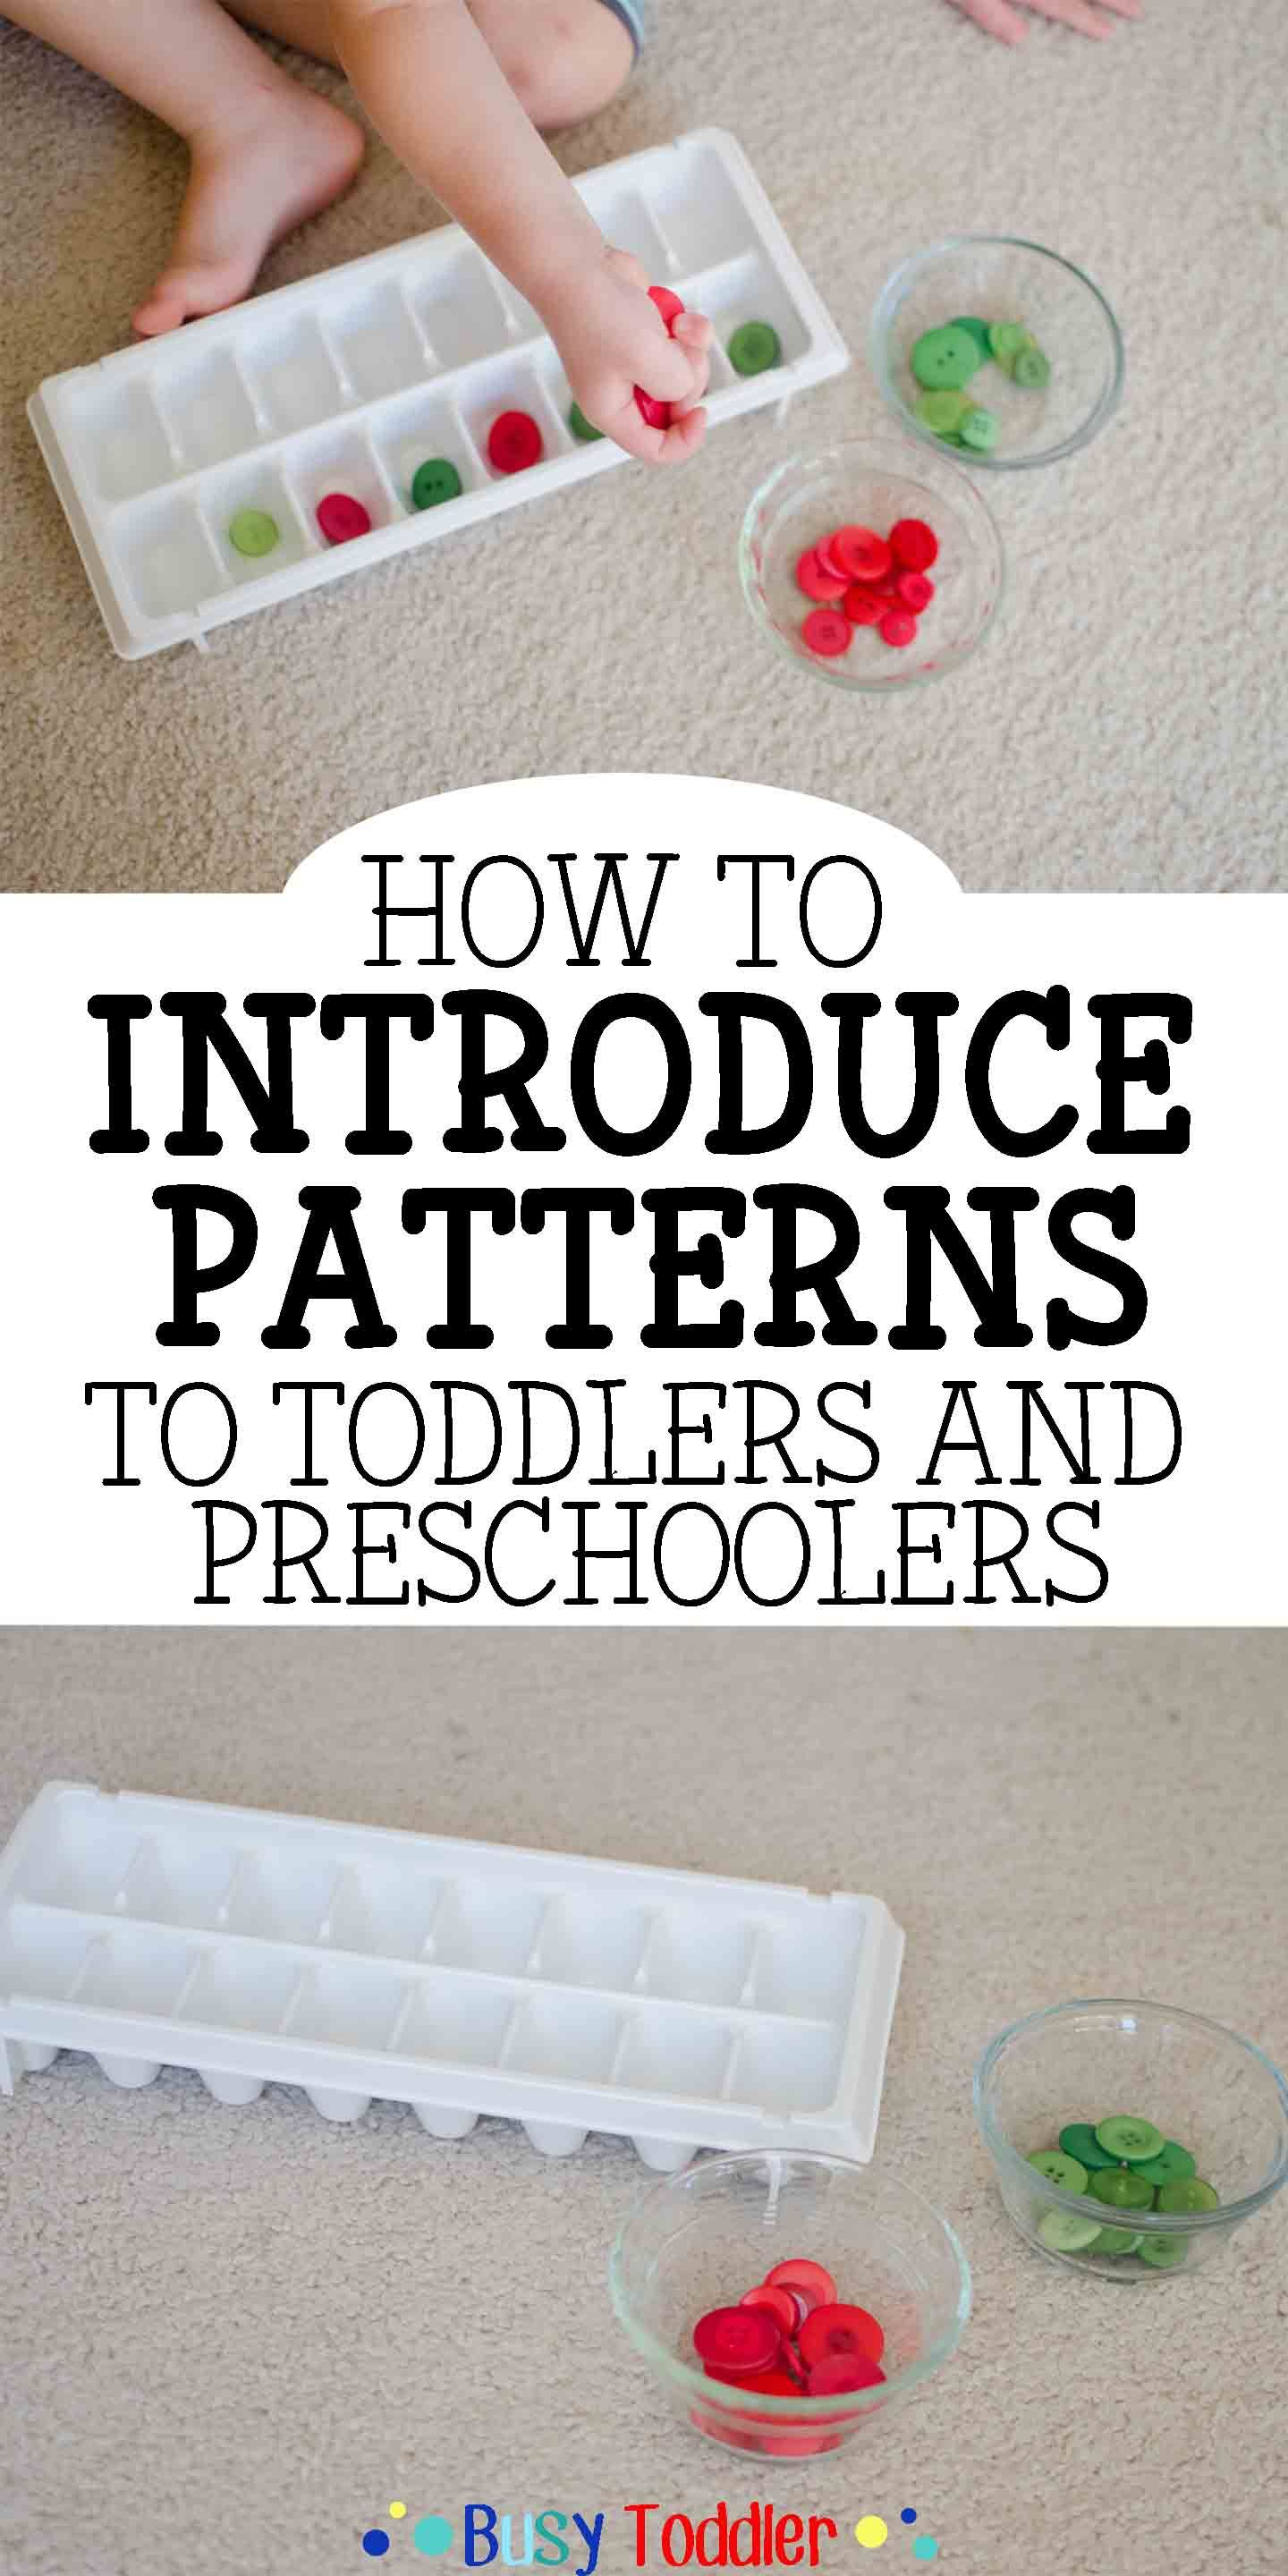 Introducing Patterns To Toddlers Preschoolers Preschool